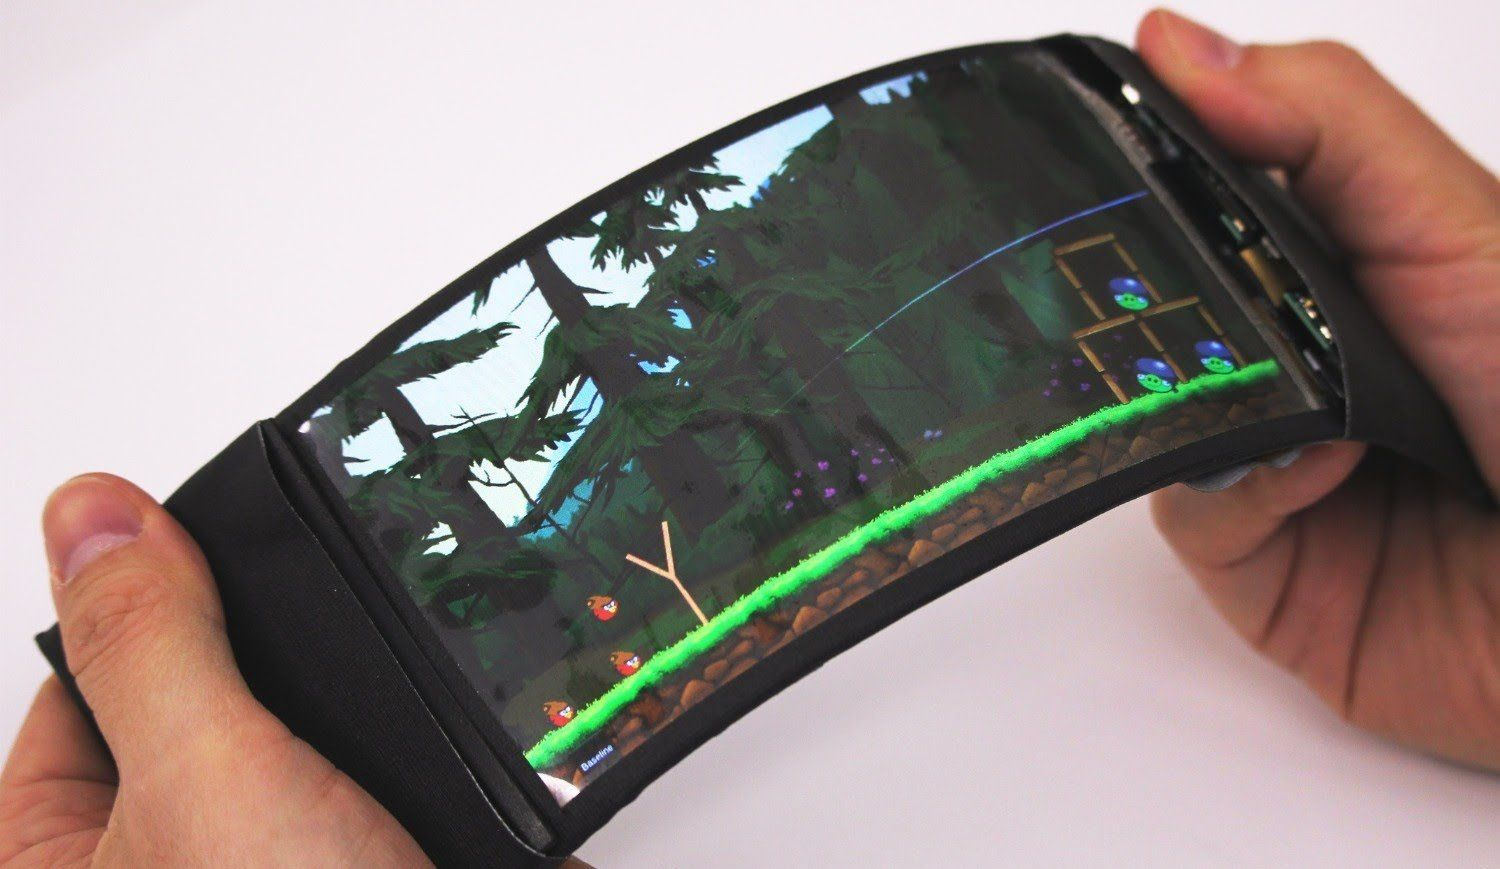 New Smartphones 2020 Bendable iPhone will appear in 2020? | Technology News World